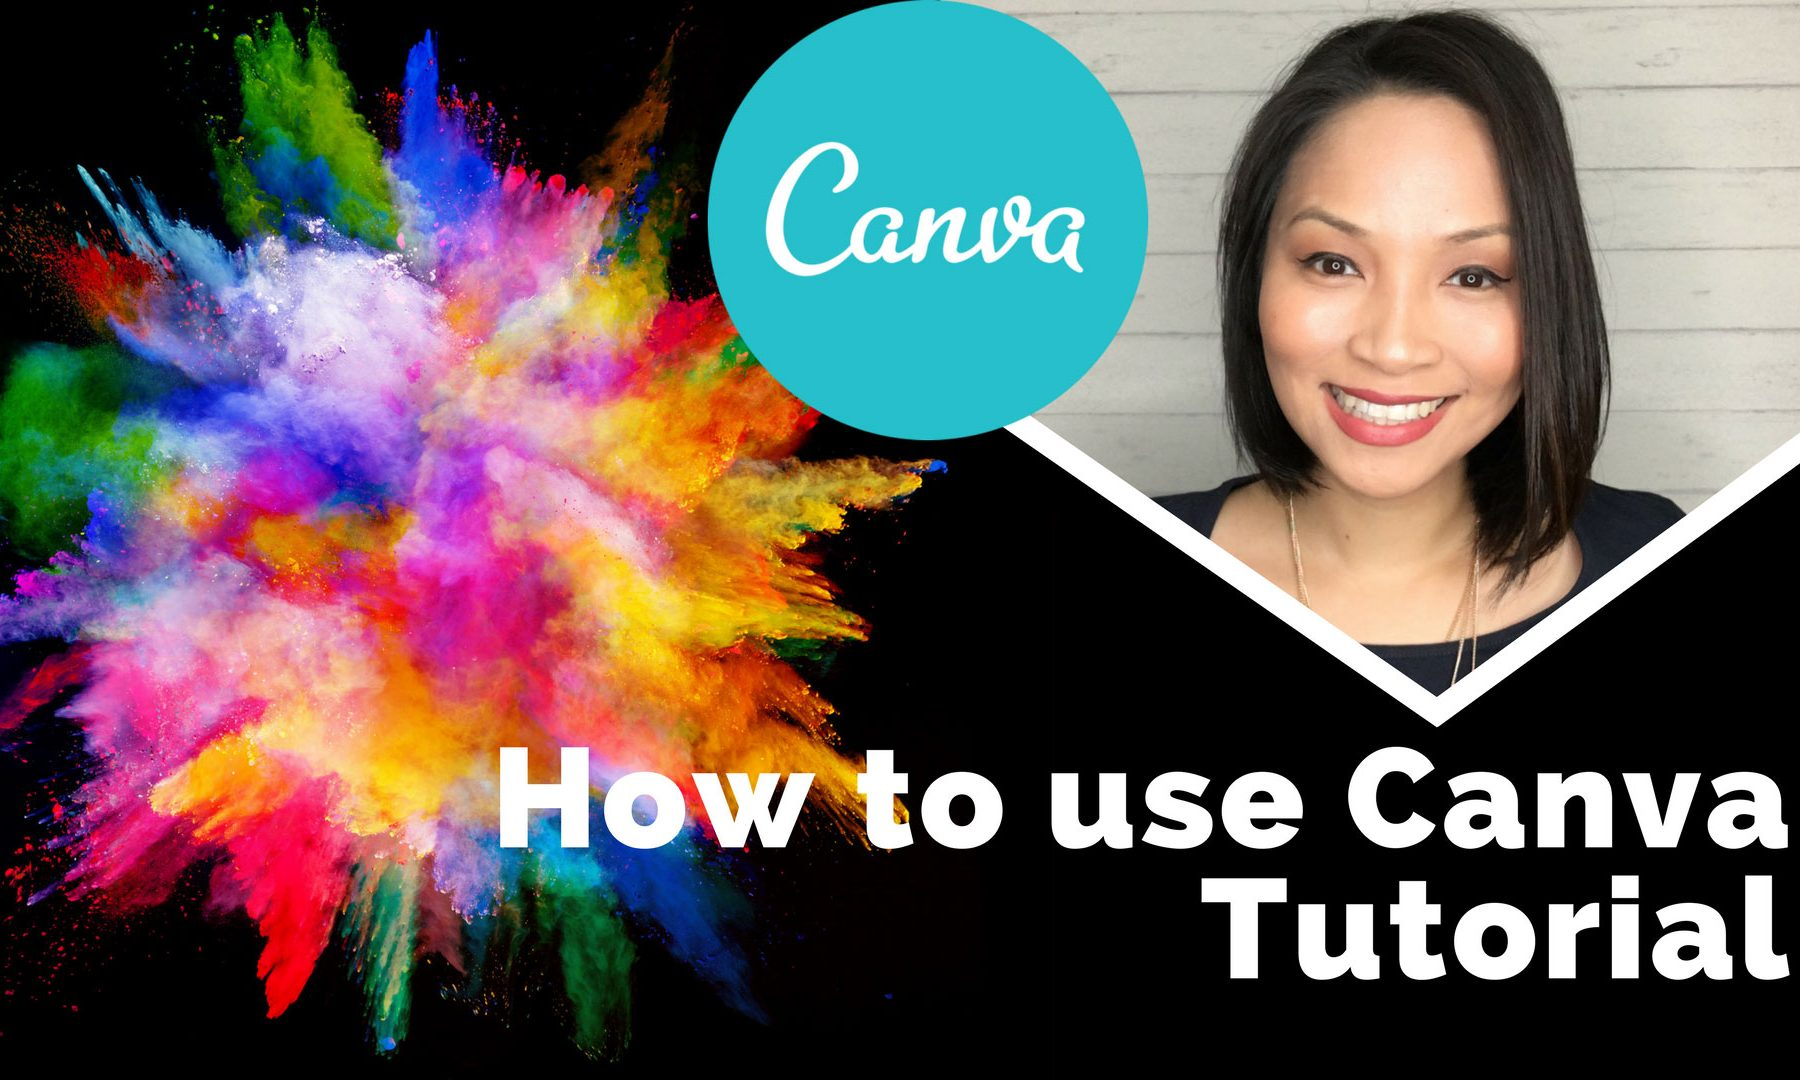 How to use Canva Tutorial